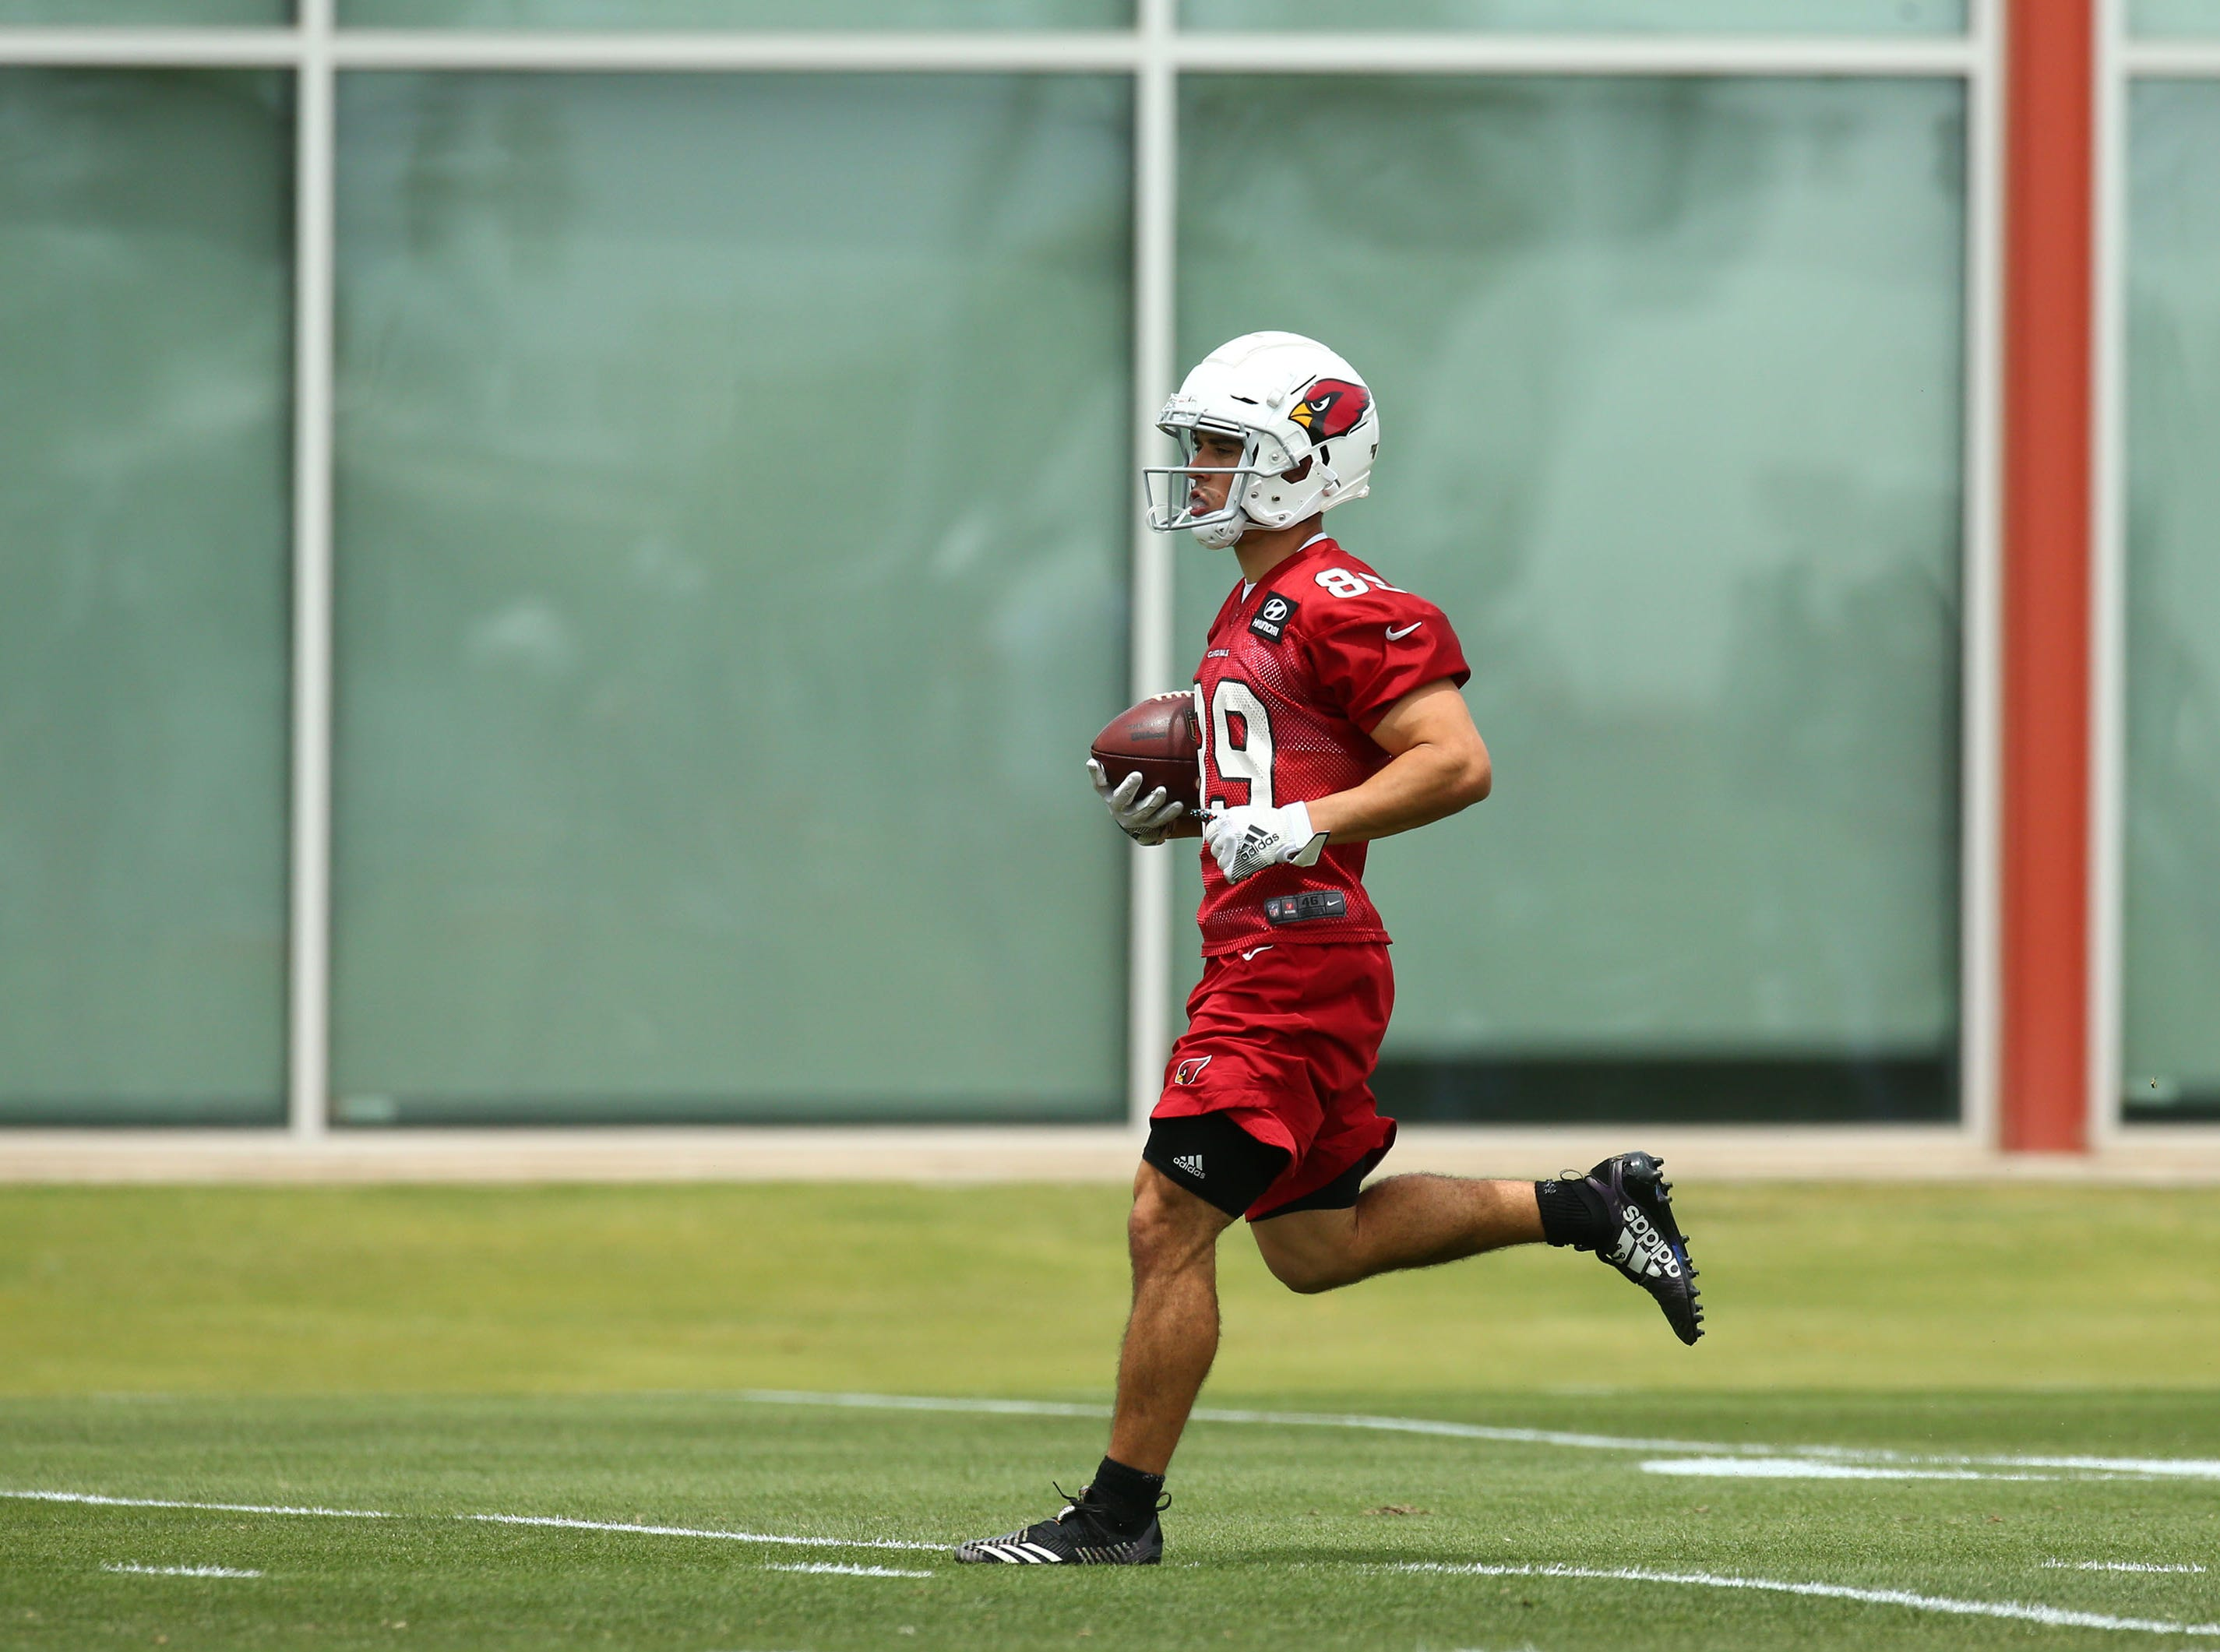 Cardinals receiver Andy Isabella (89) runs with the ball during the first day of rookie minicamp on May 10.